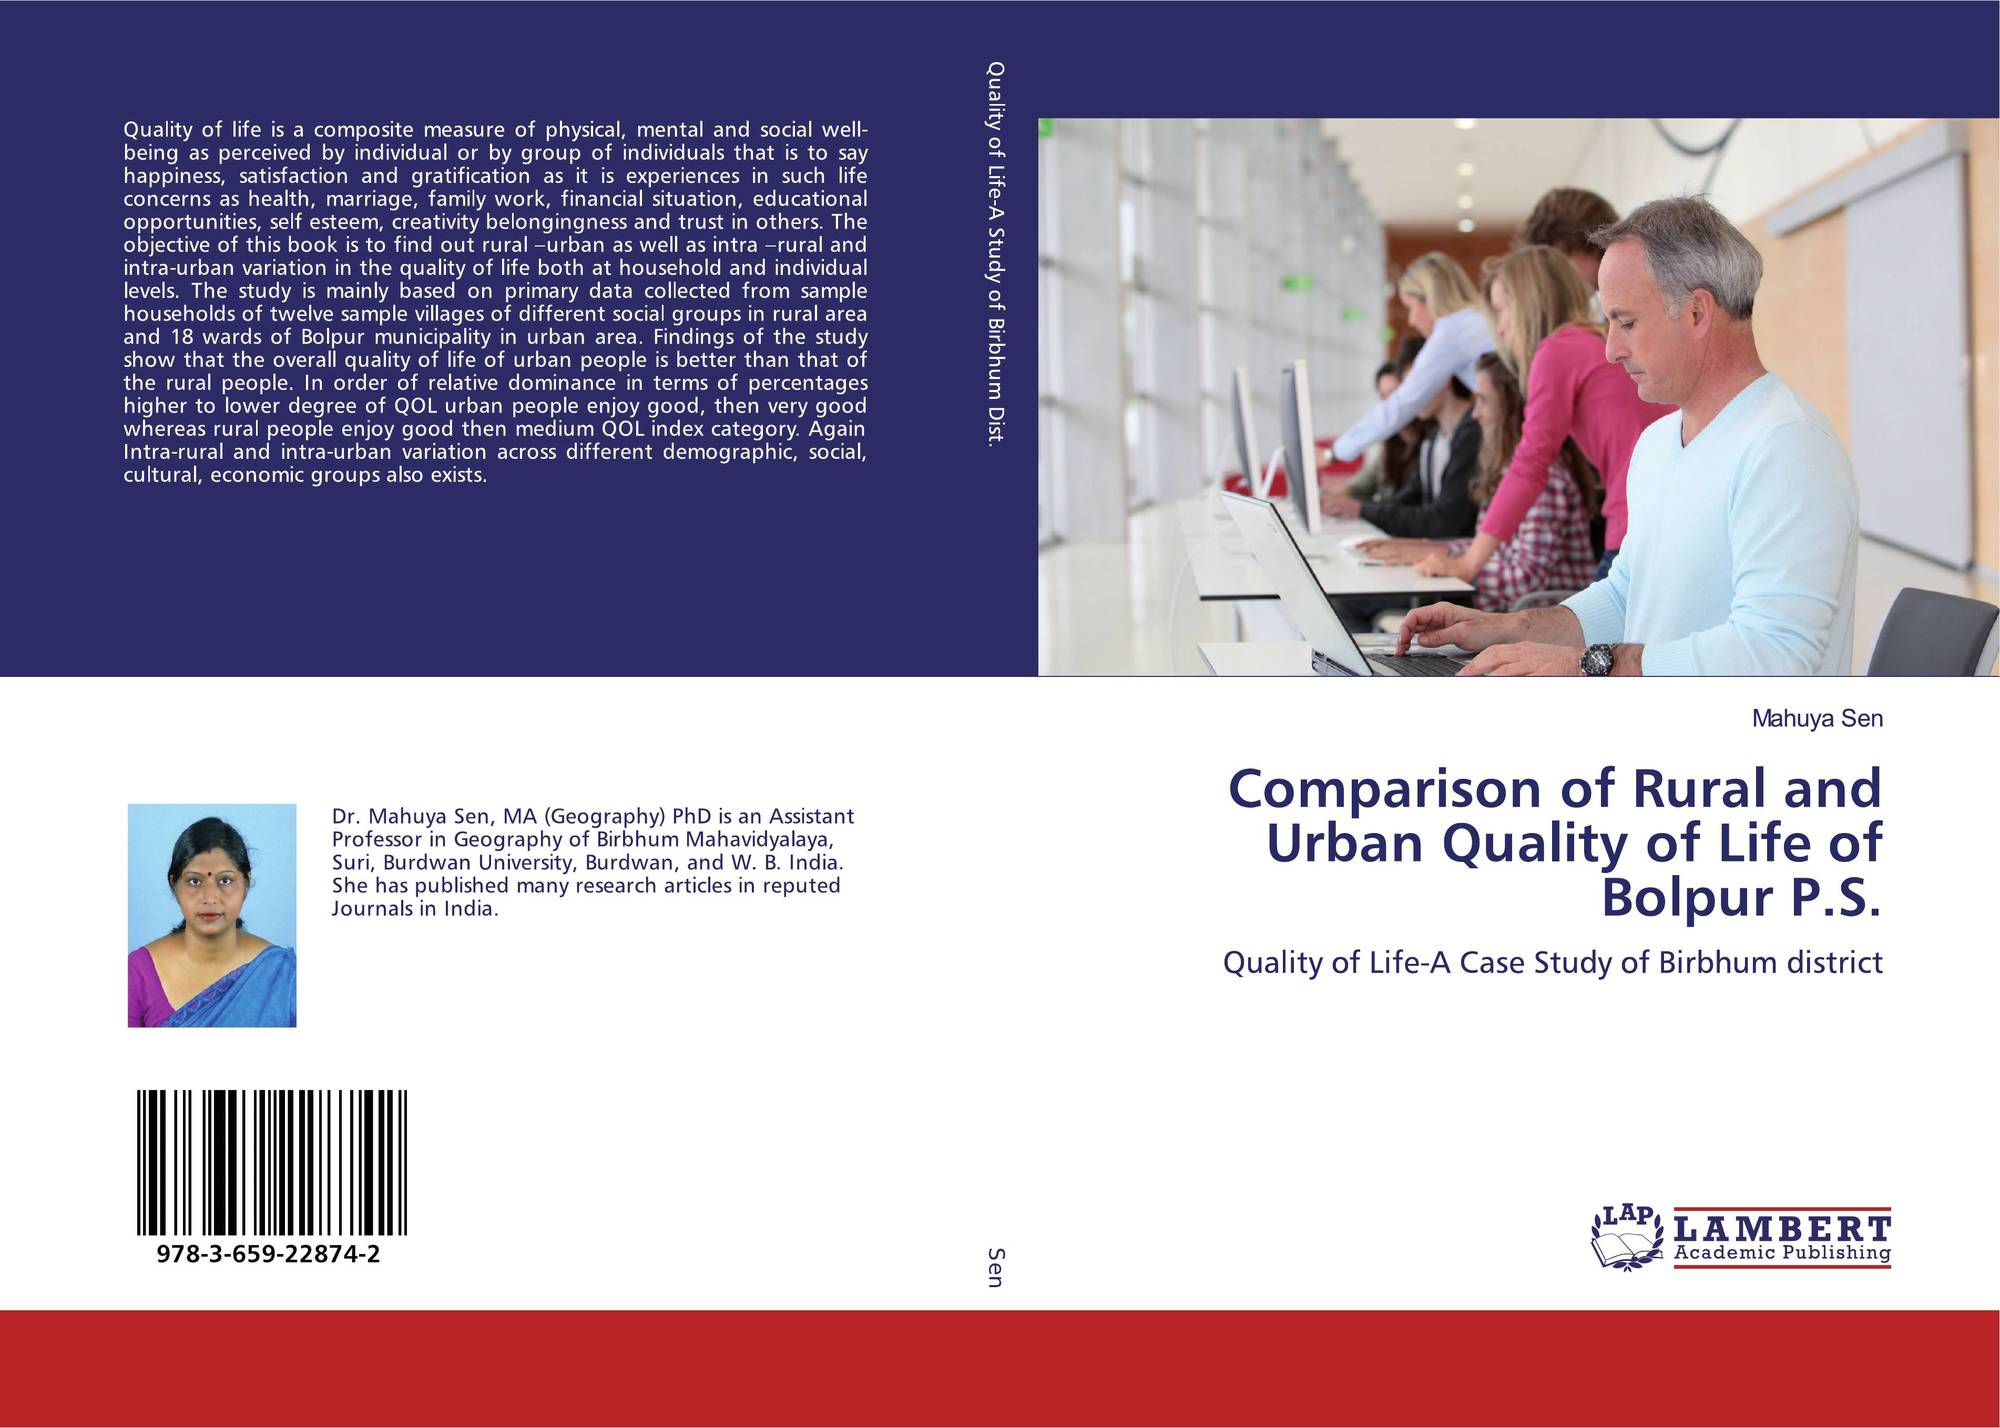 compare and contrast urban life and rural life Edward bullough aesthetics lectures and essays about life research papers on international finance corp social darwinism and eugenics essay my light bulb moment essay deinstitutionalization of the mentally ill essays on education how to write and urban rural life life and compare essay contrast.